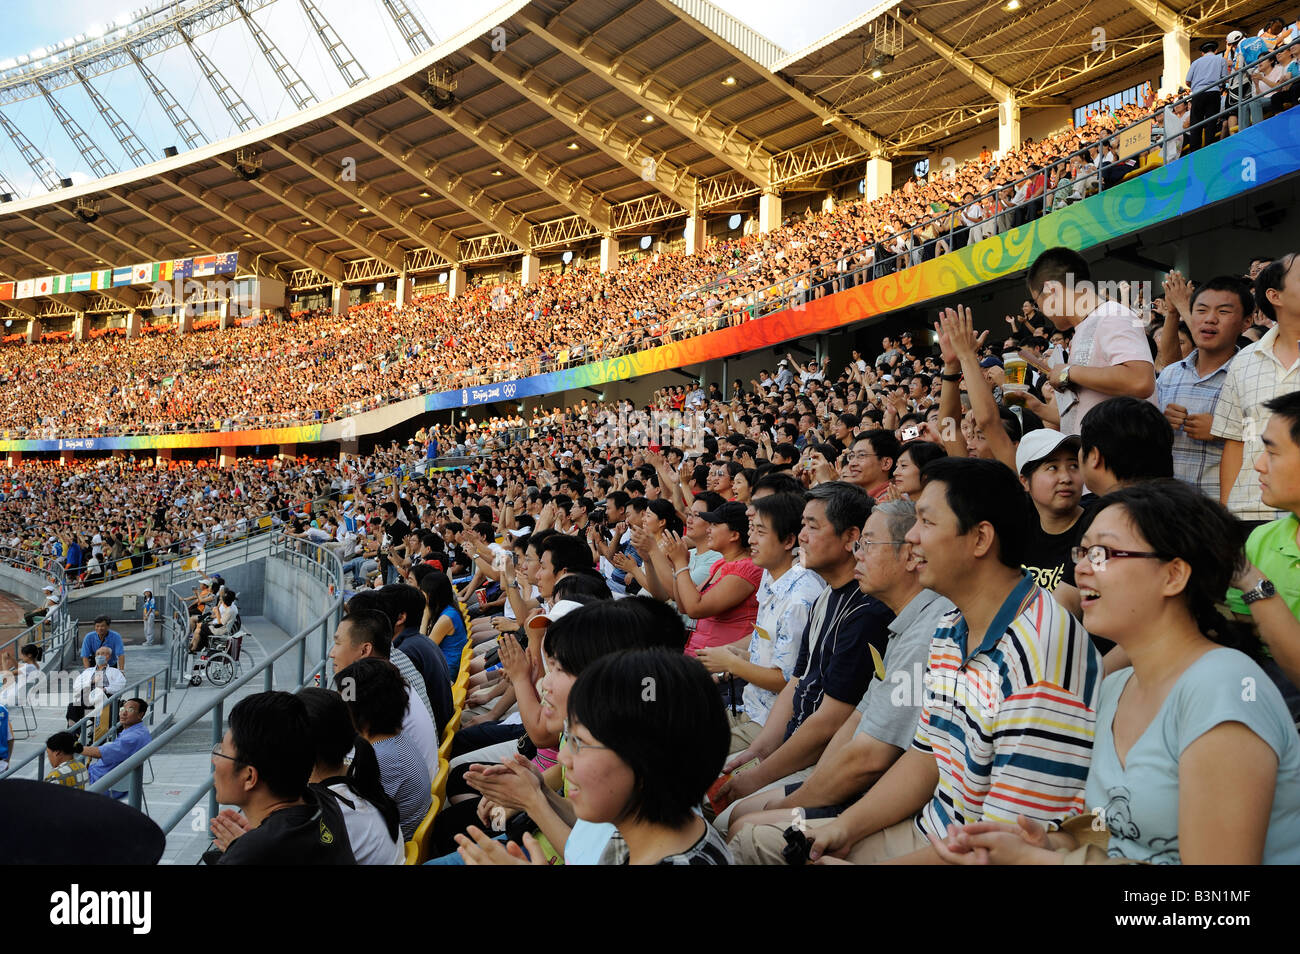 Chinese spectators watching a football game at the Beijing 2008 Olympic Games.16-Aug-2008 - Stock Image